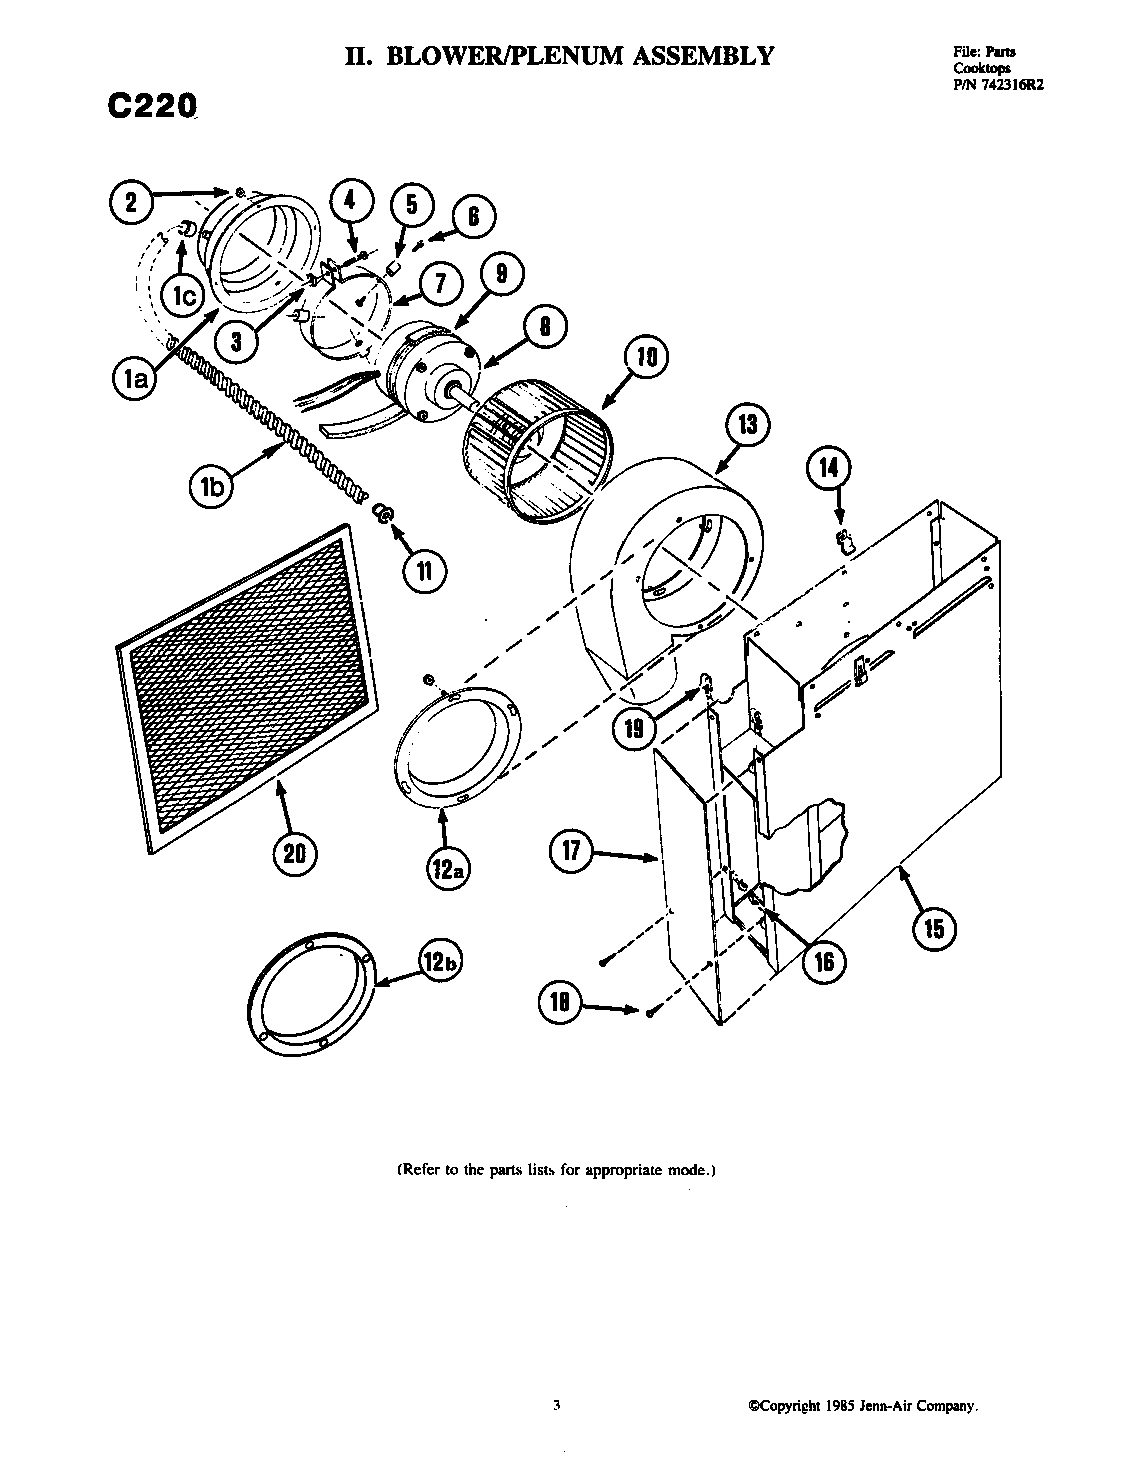 BLOWER ASSEMBLY Diagram & Parts List for Model C220 Jenn